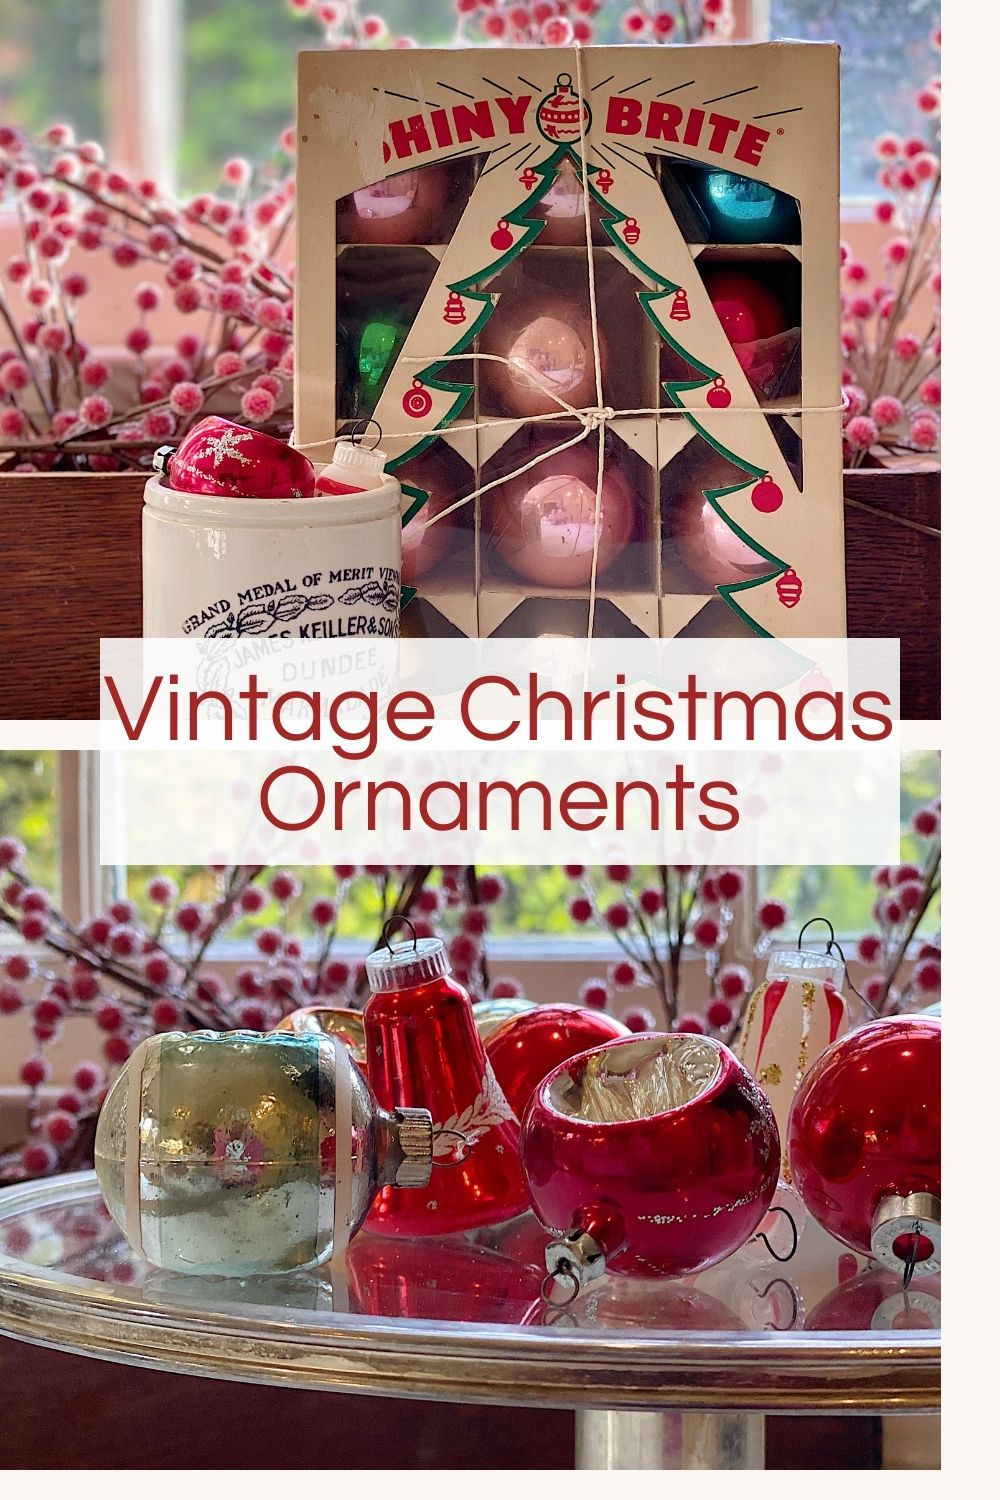 I have collected Vintage Christmas ornaments for years. I love vintage ornaments, especially the ones from Shiny Brite. Today I am sharing where you can find these ornaments too.